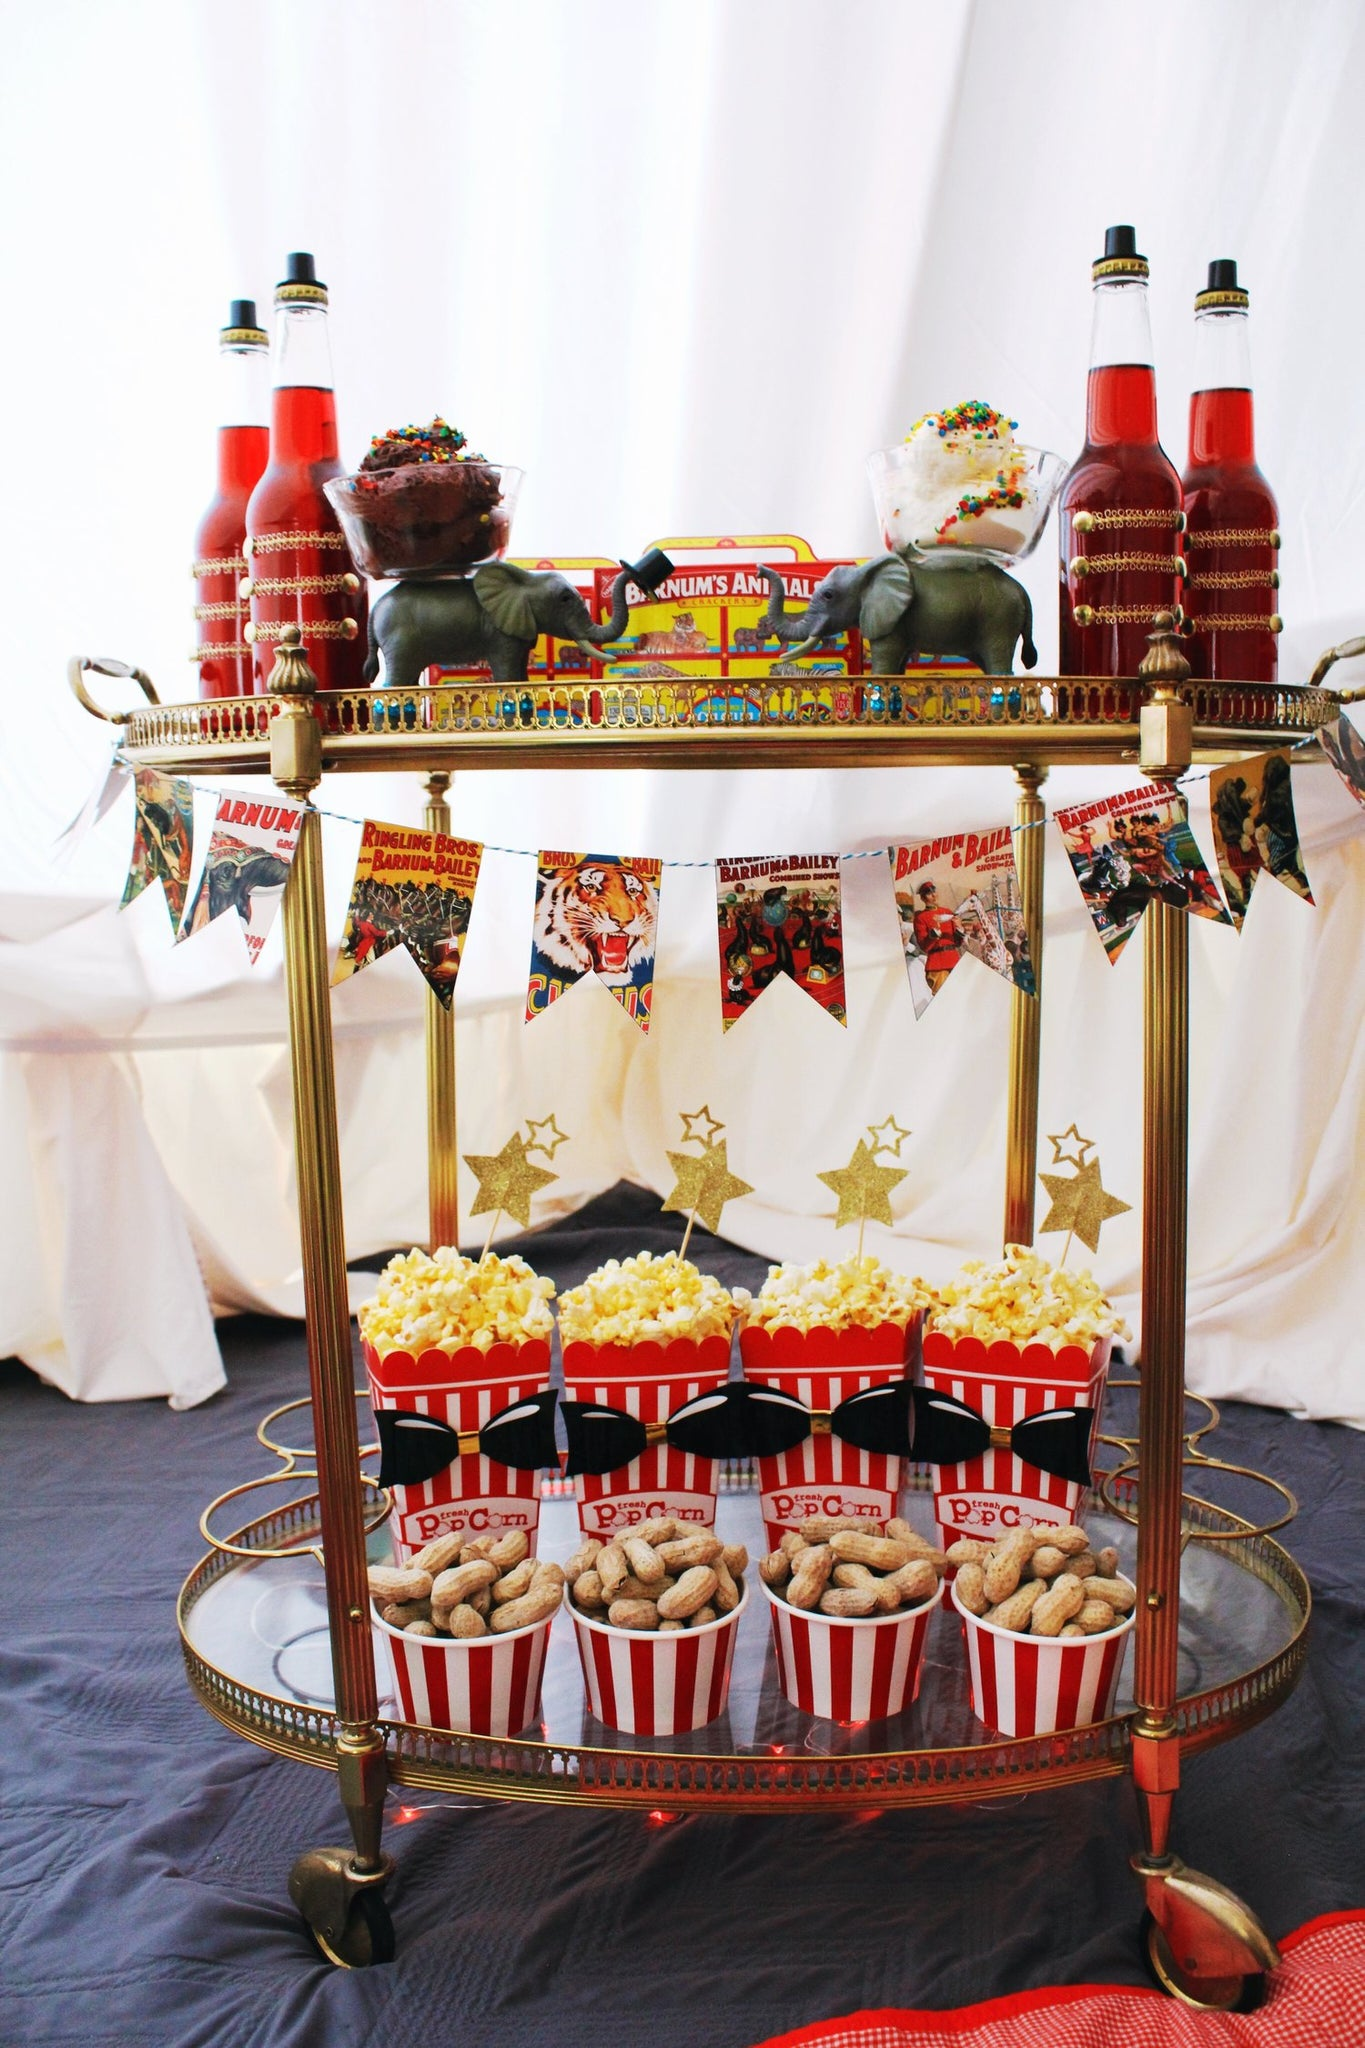 The Greatest Showman Party Ideas